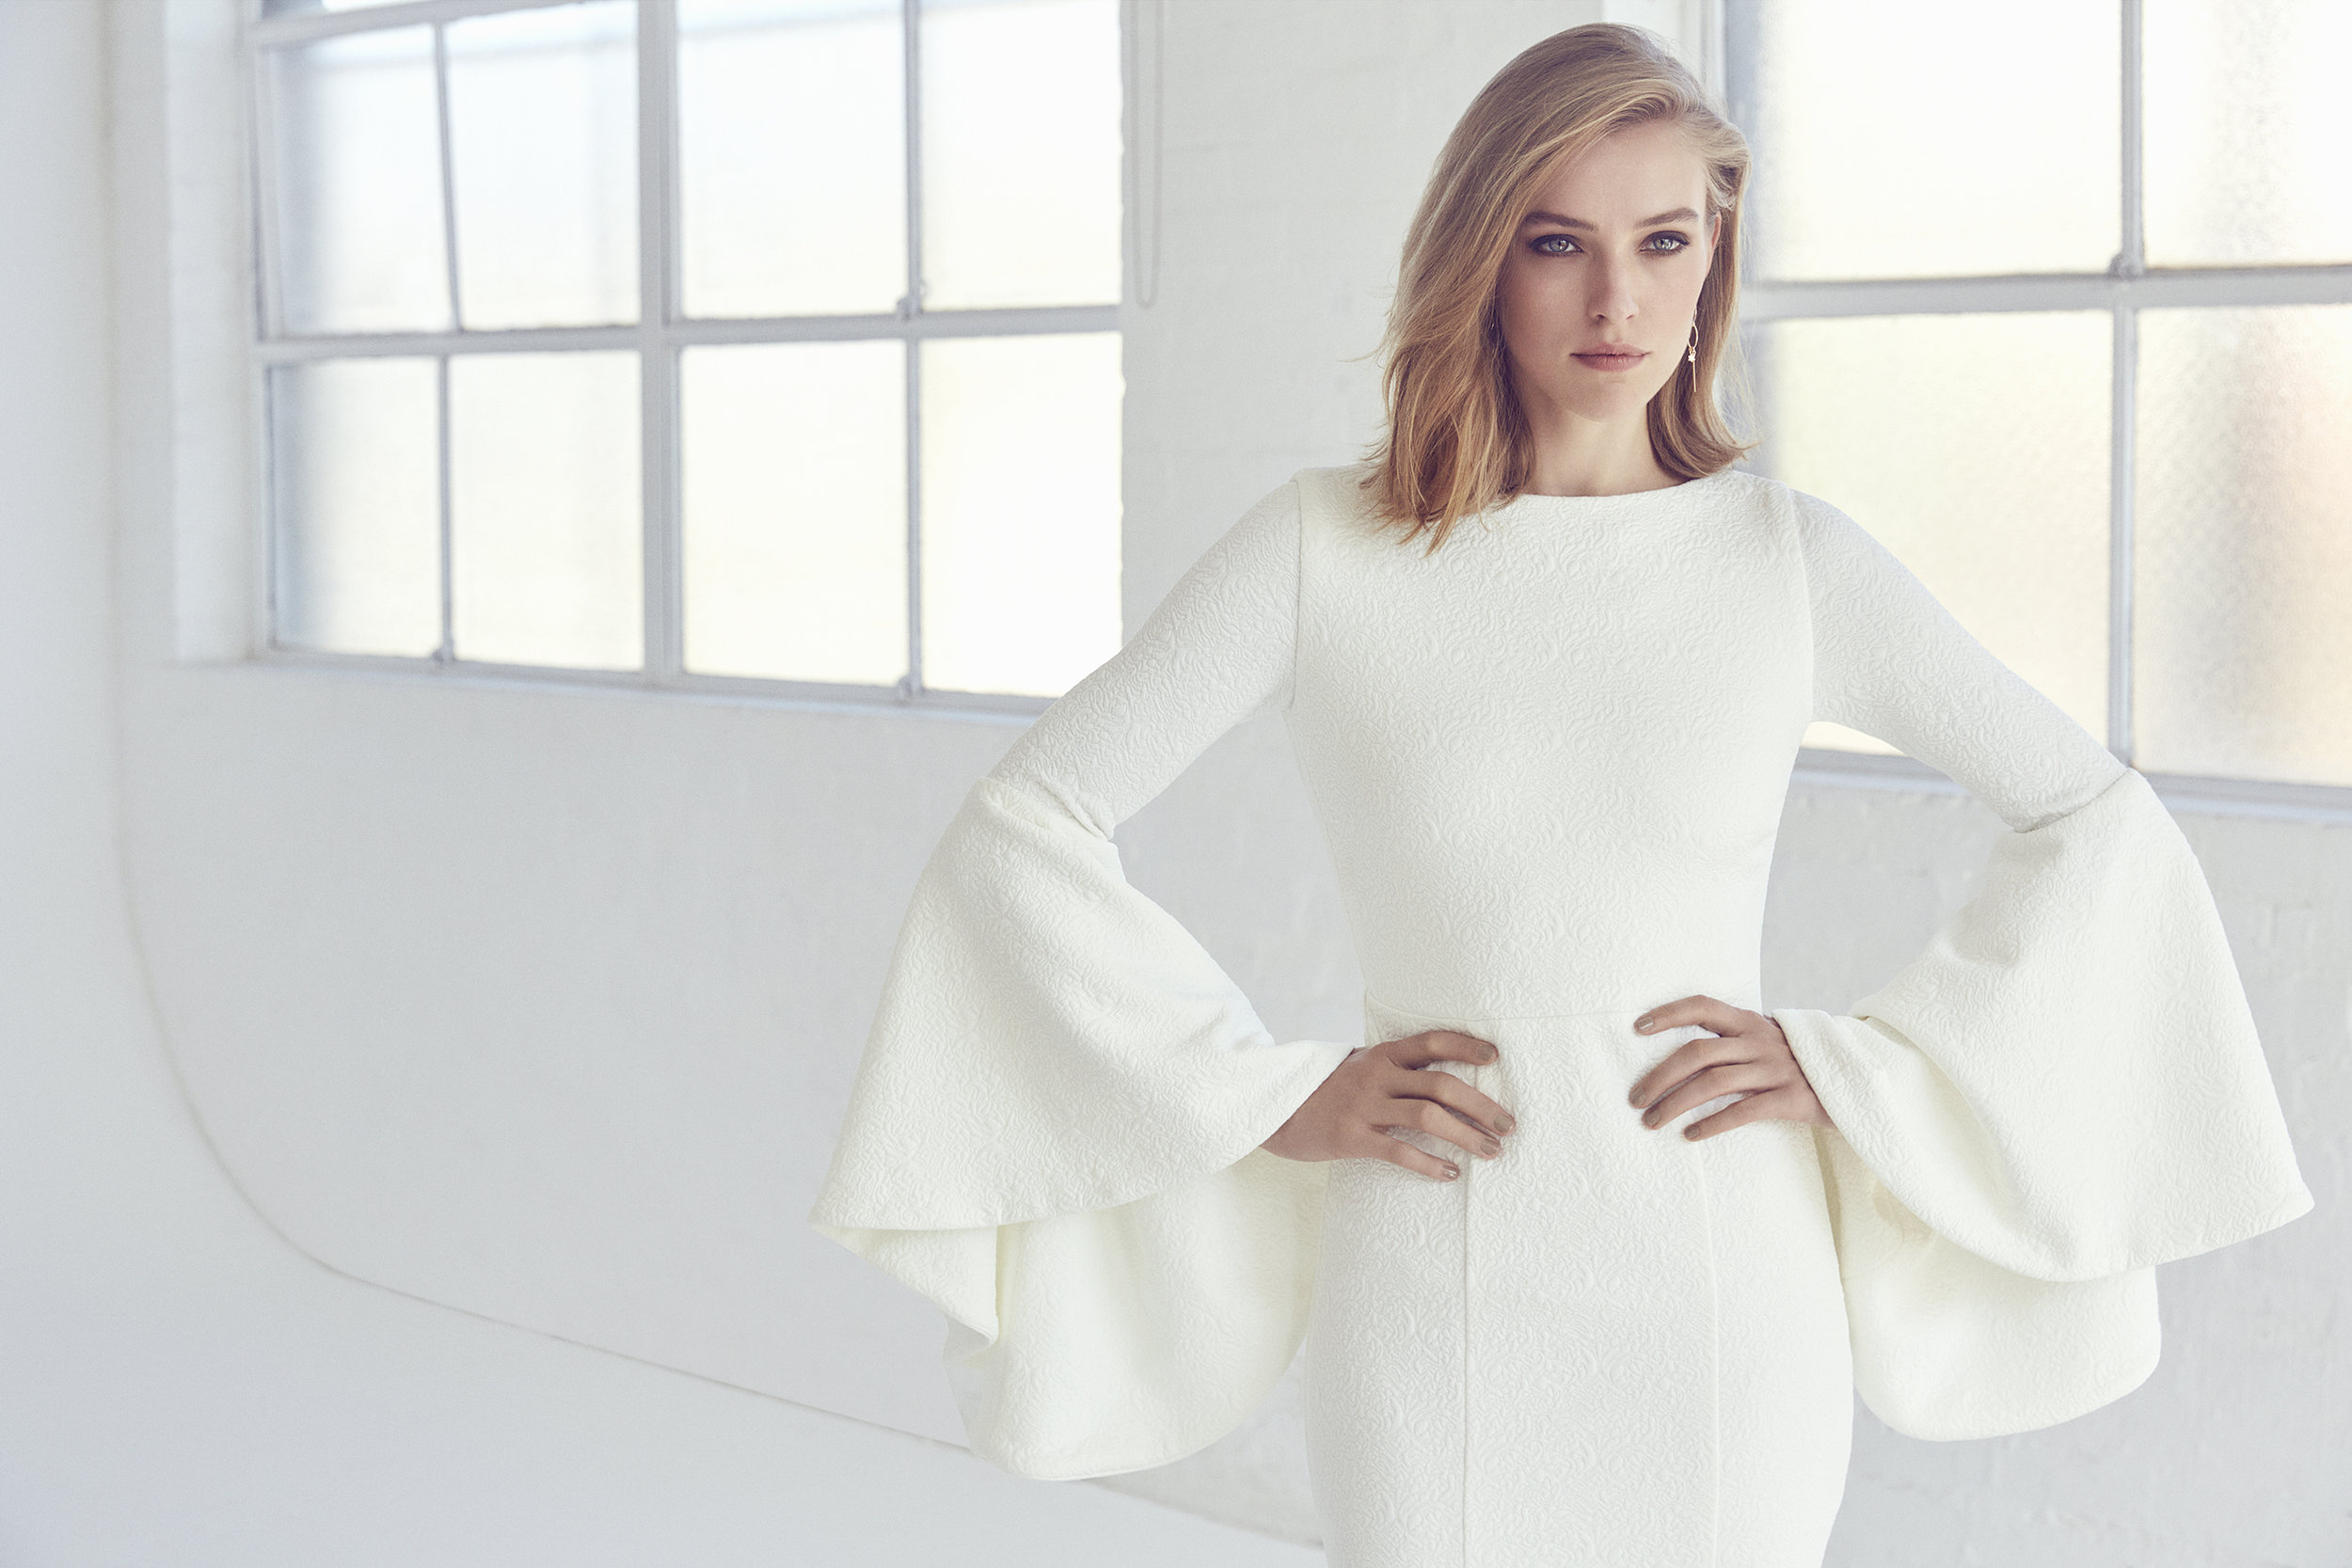 Bell Gown by Suzanne Harward   As Featured on LOVE FIND CO.